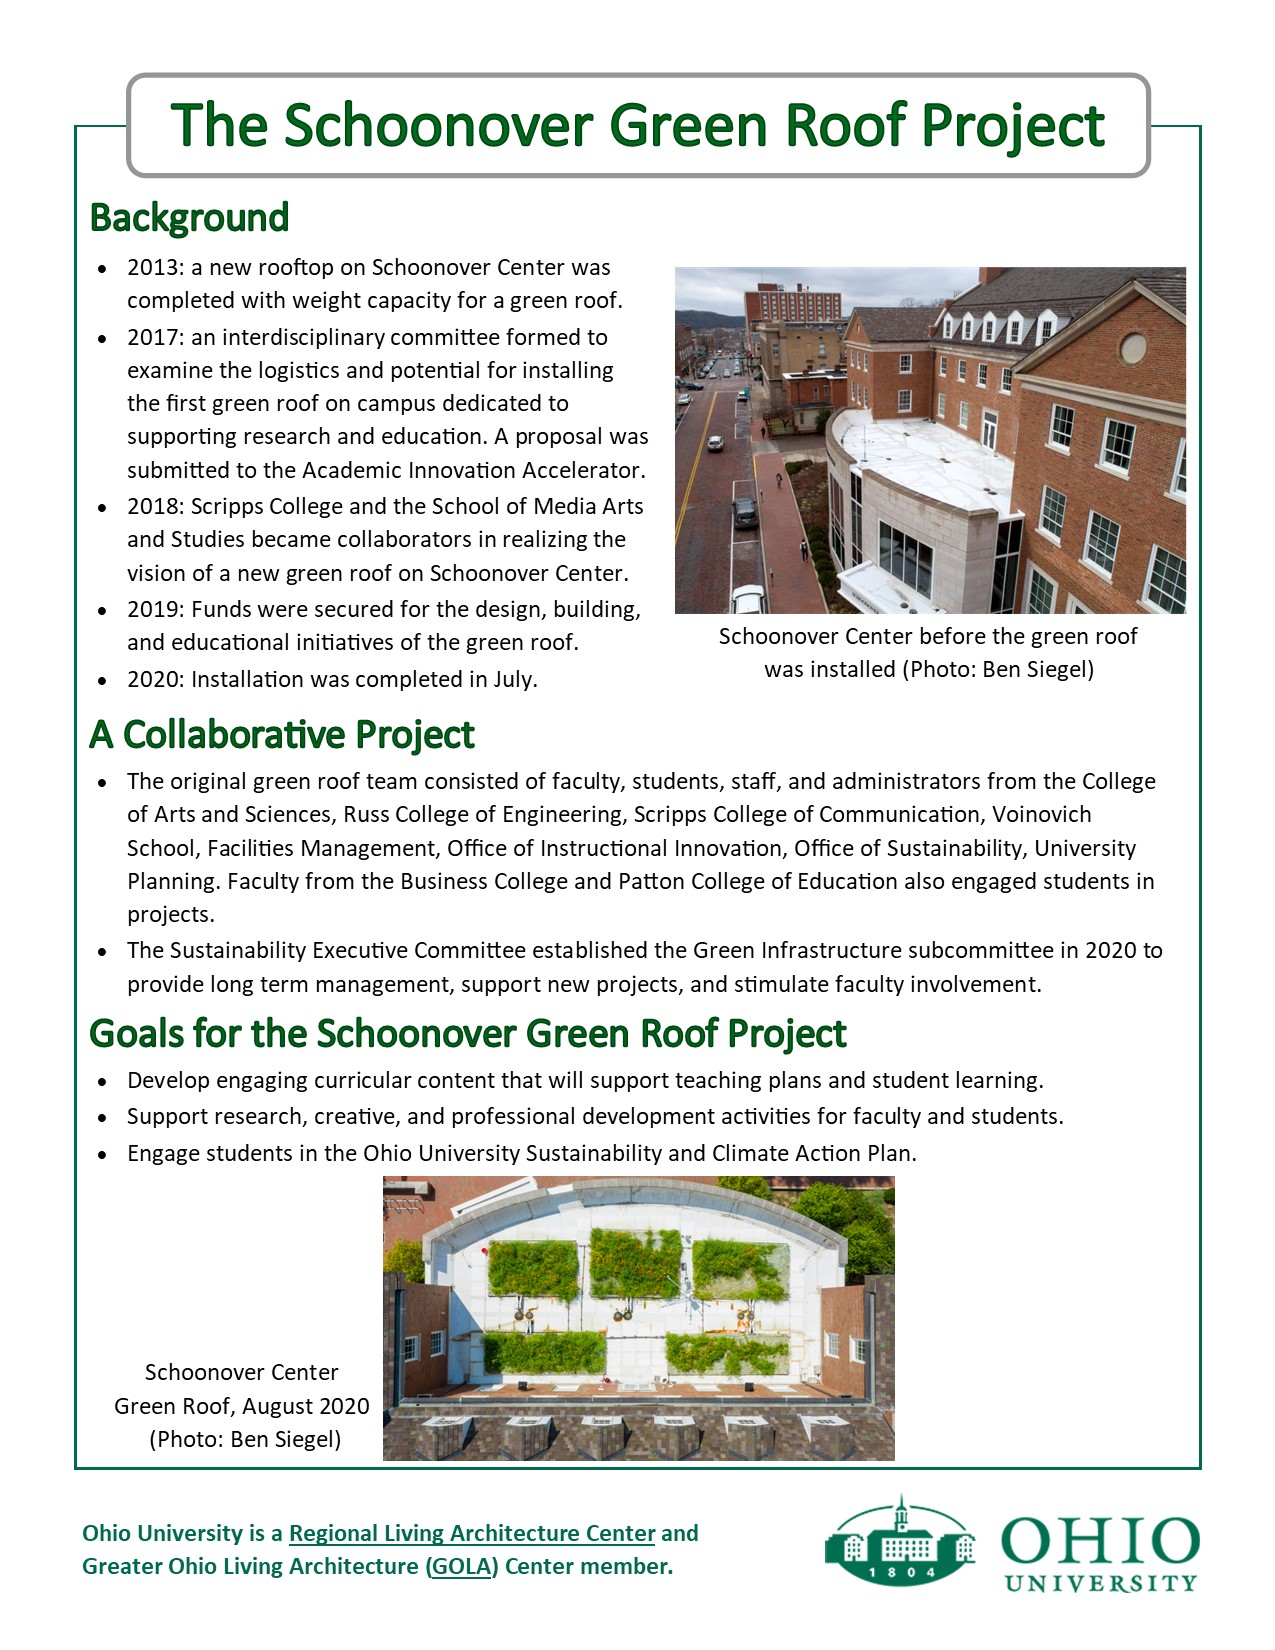 Flyer describing a green roof on Schoonover Center p.1